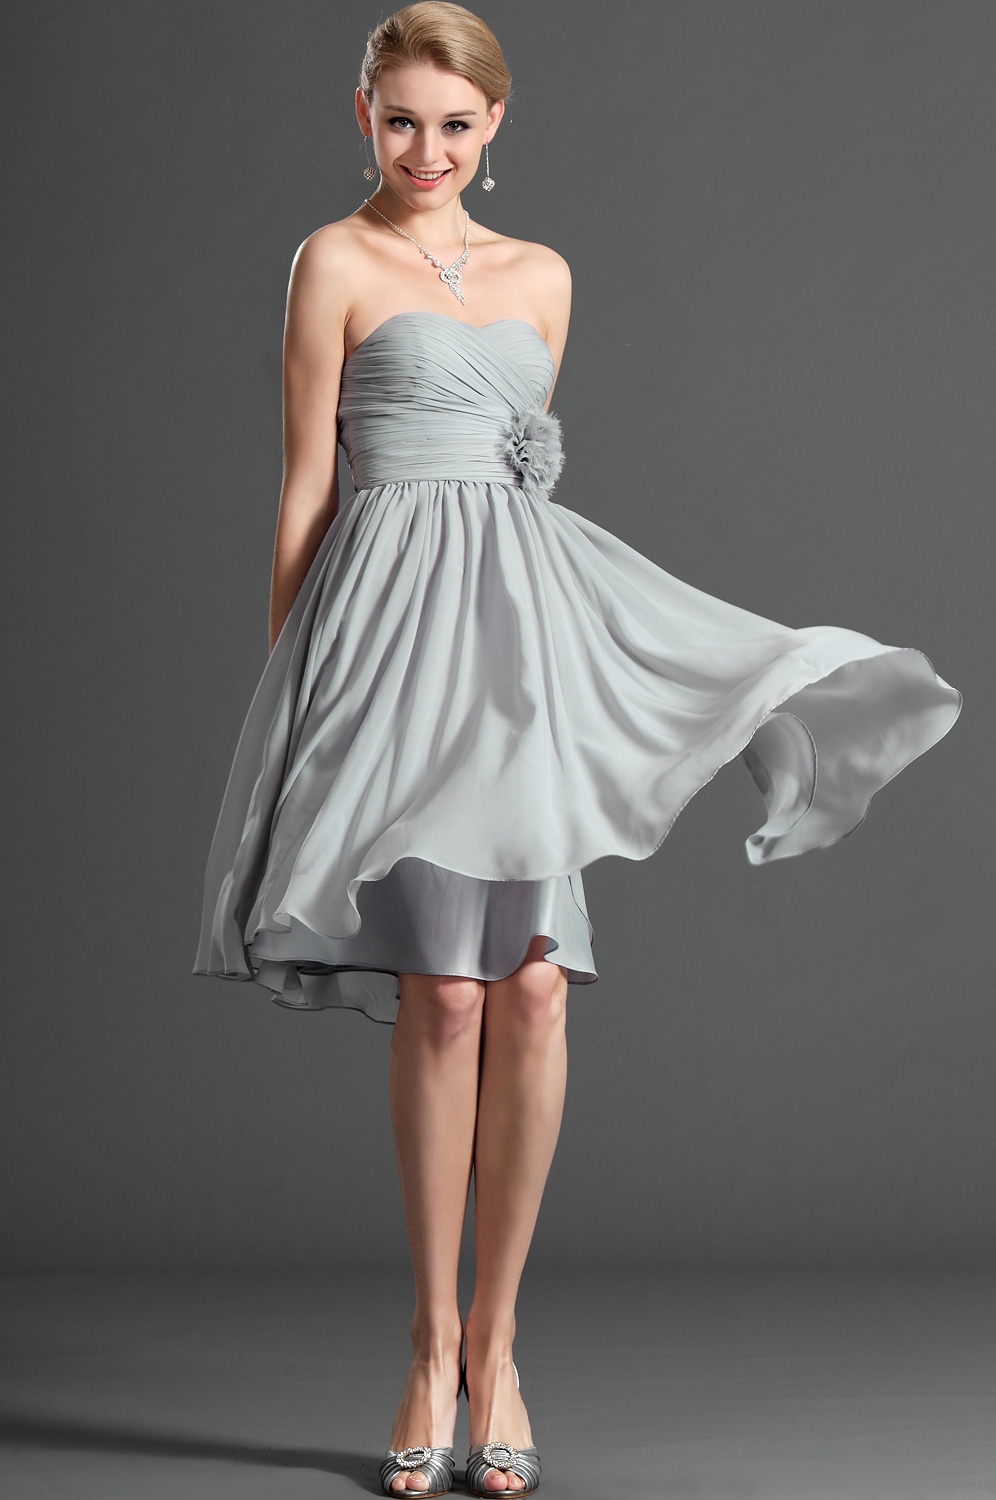 Silver Strapless Cocktail Dress Pictures Photos And